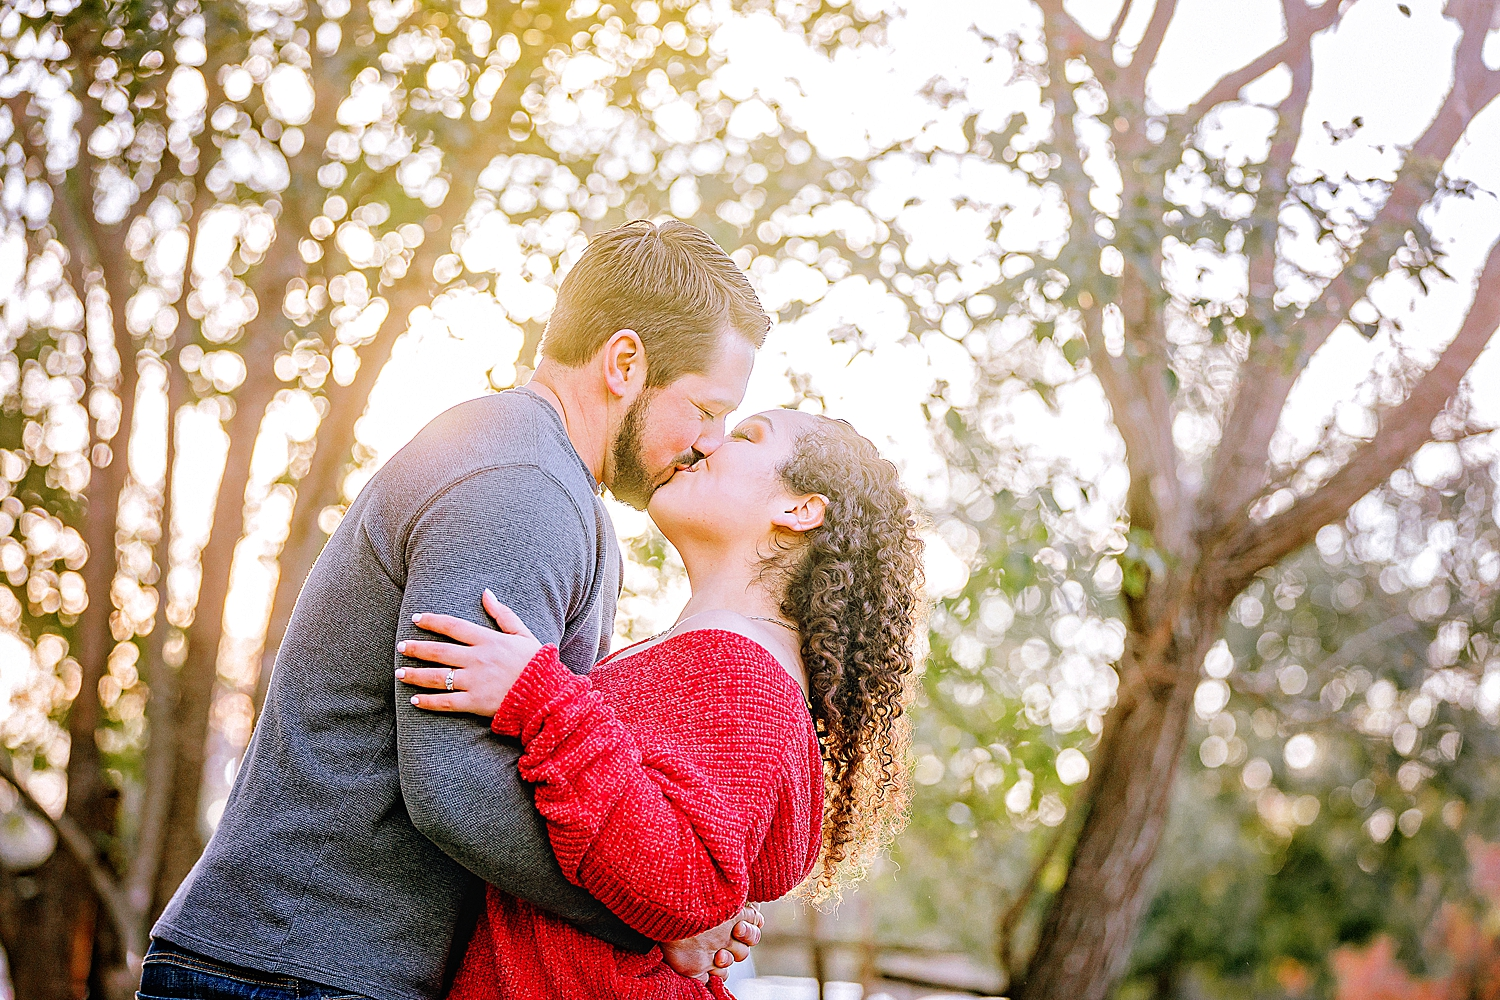 Engagement-photo-session-gruene-new-braunfels-texas-carly-barton-photography_0025.jpg